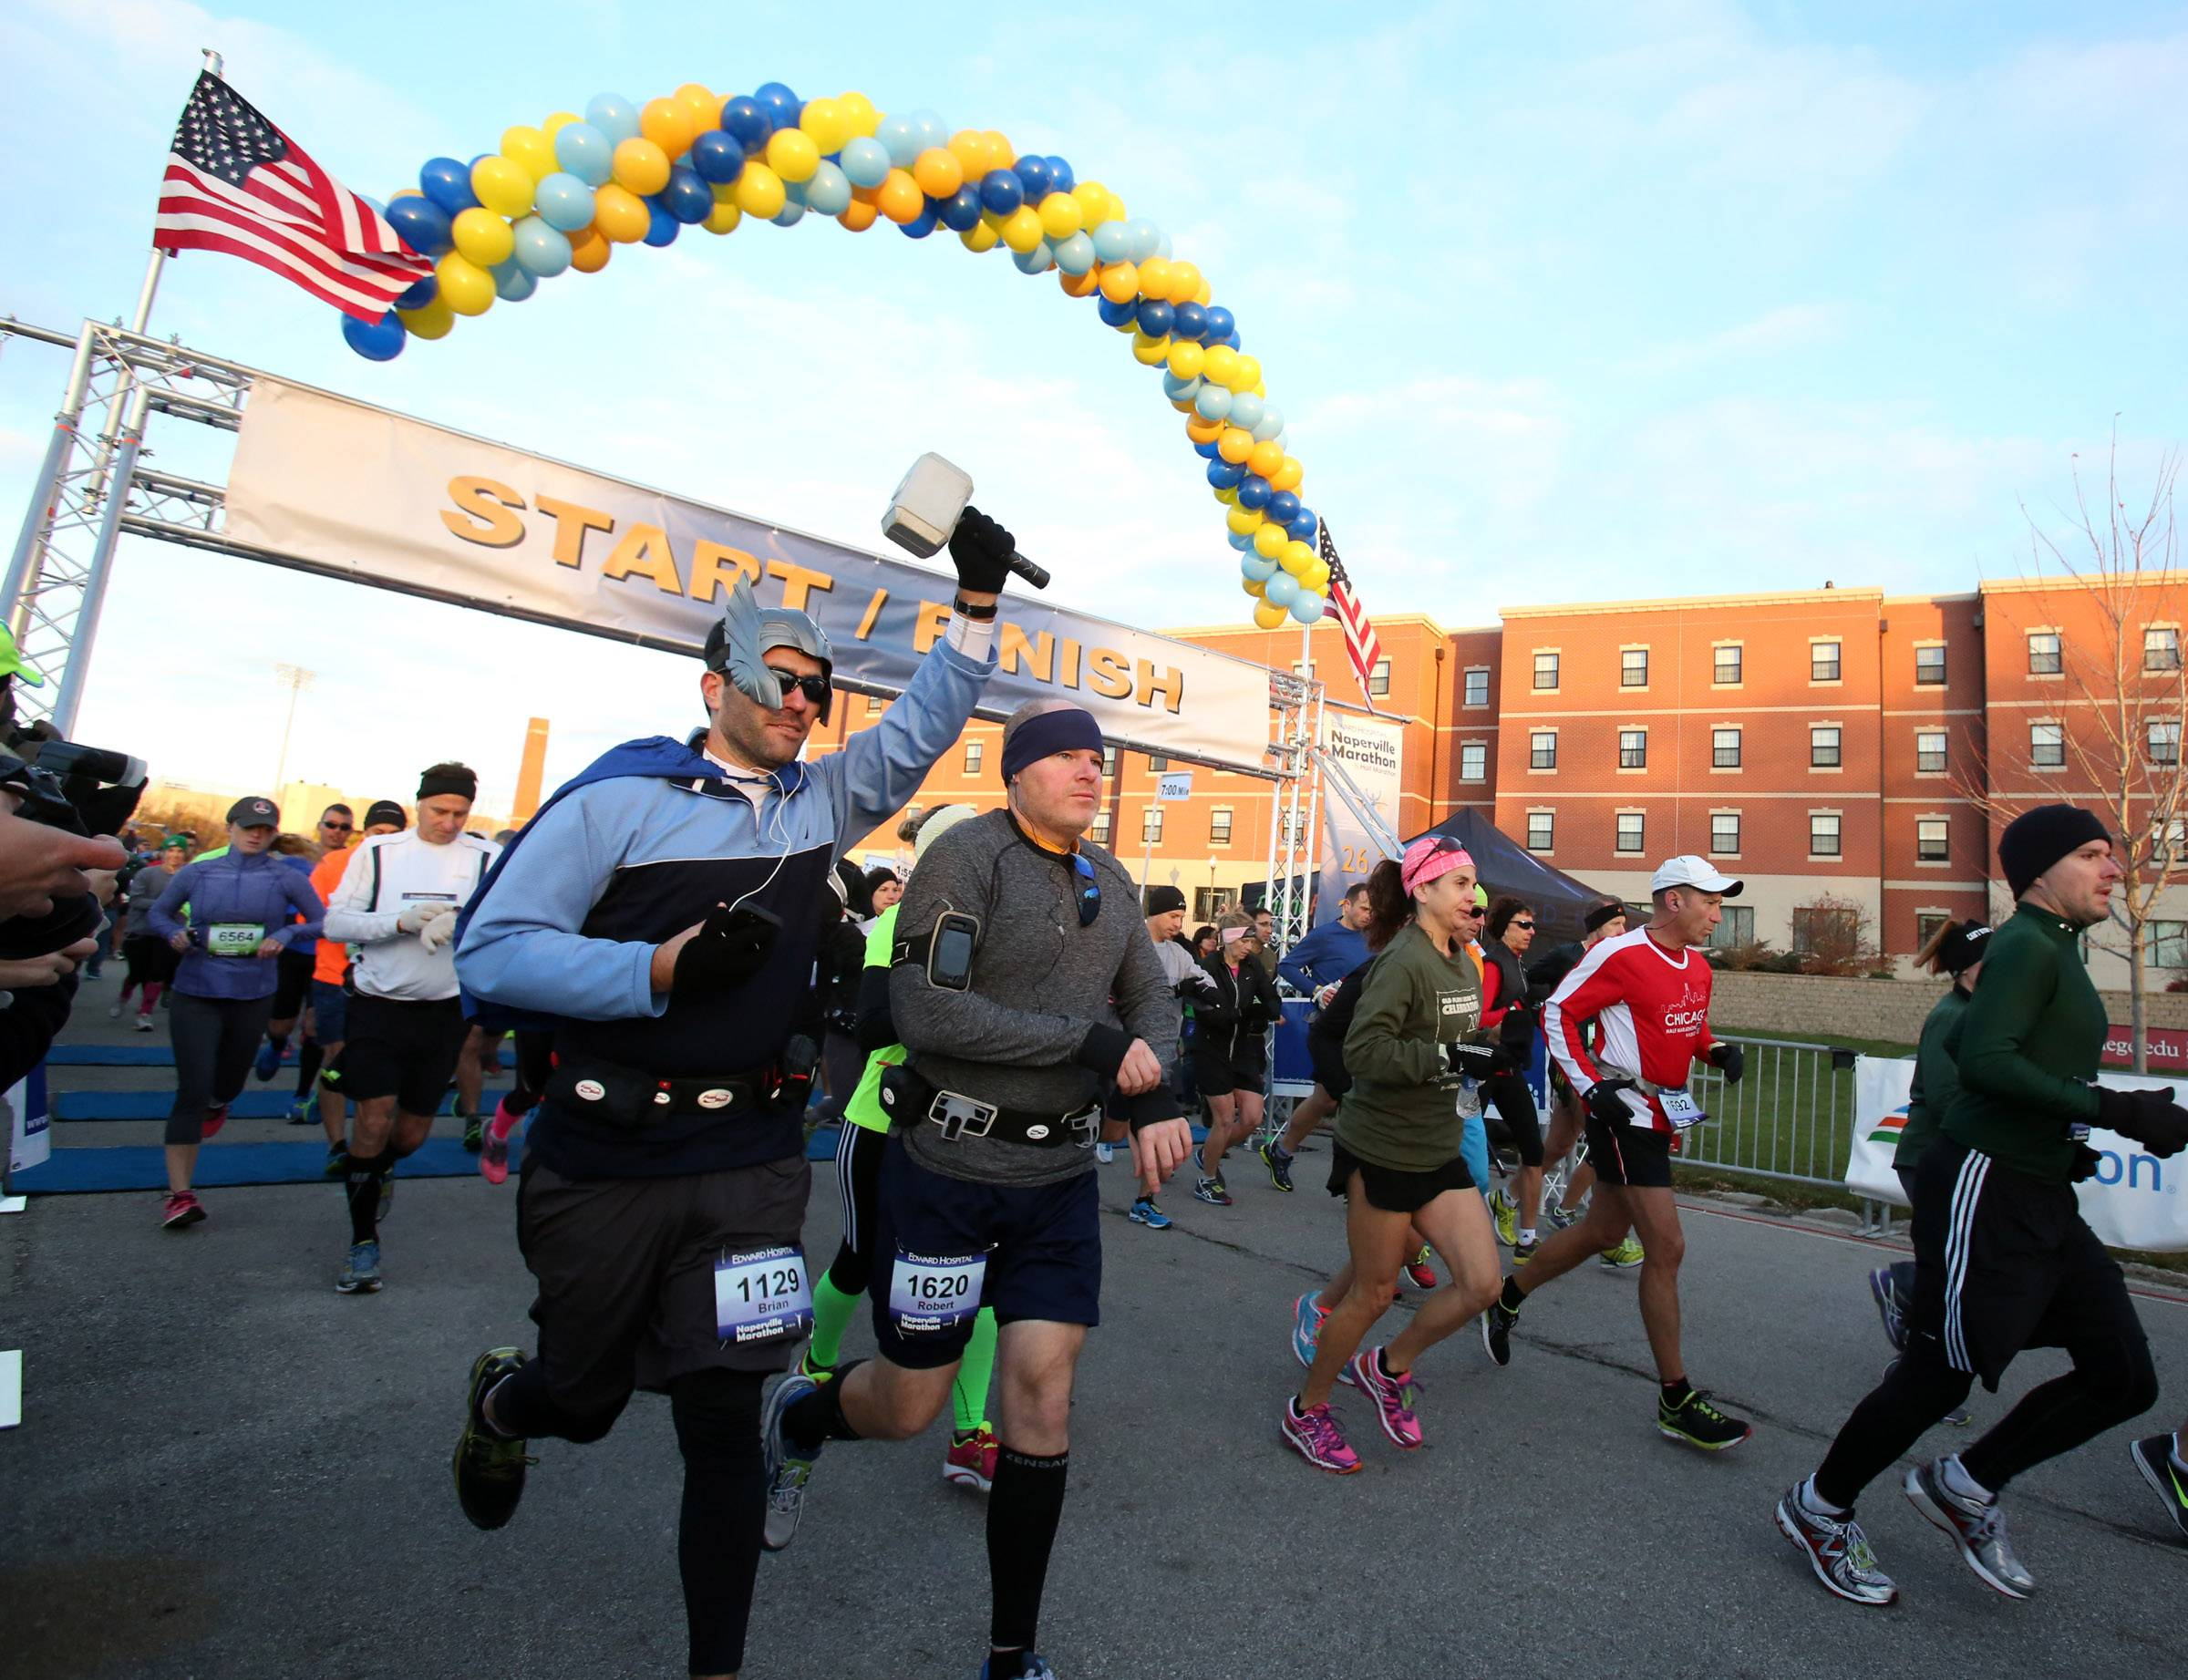 A total of 7,000 runners will be allowed to register for the second annual Edward Hospital Marathon and Half Marathon. Organizers hope to start and finish this year's race at Naperville Central High School.